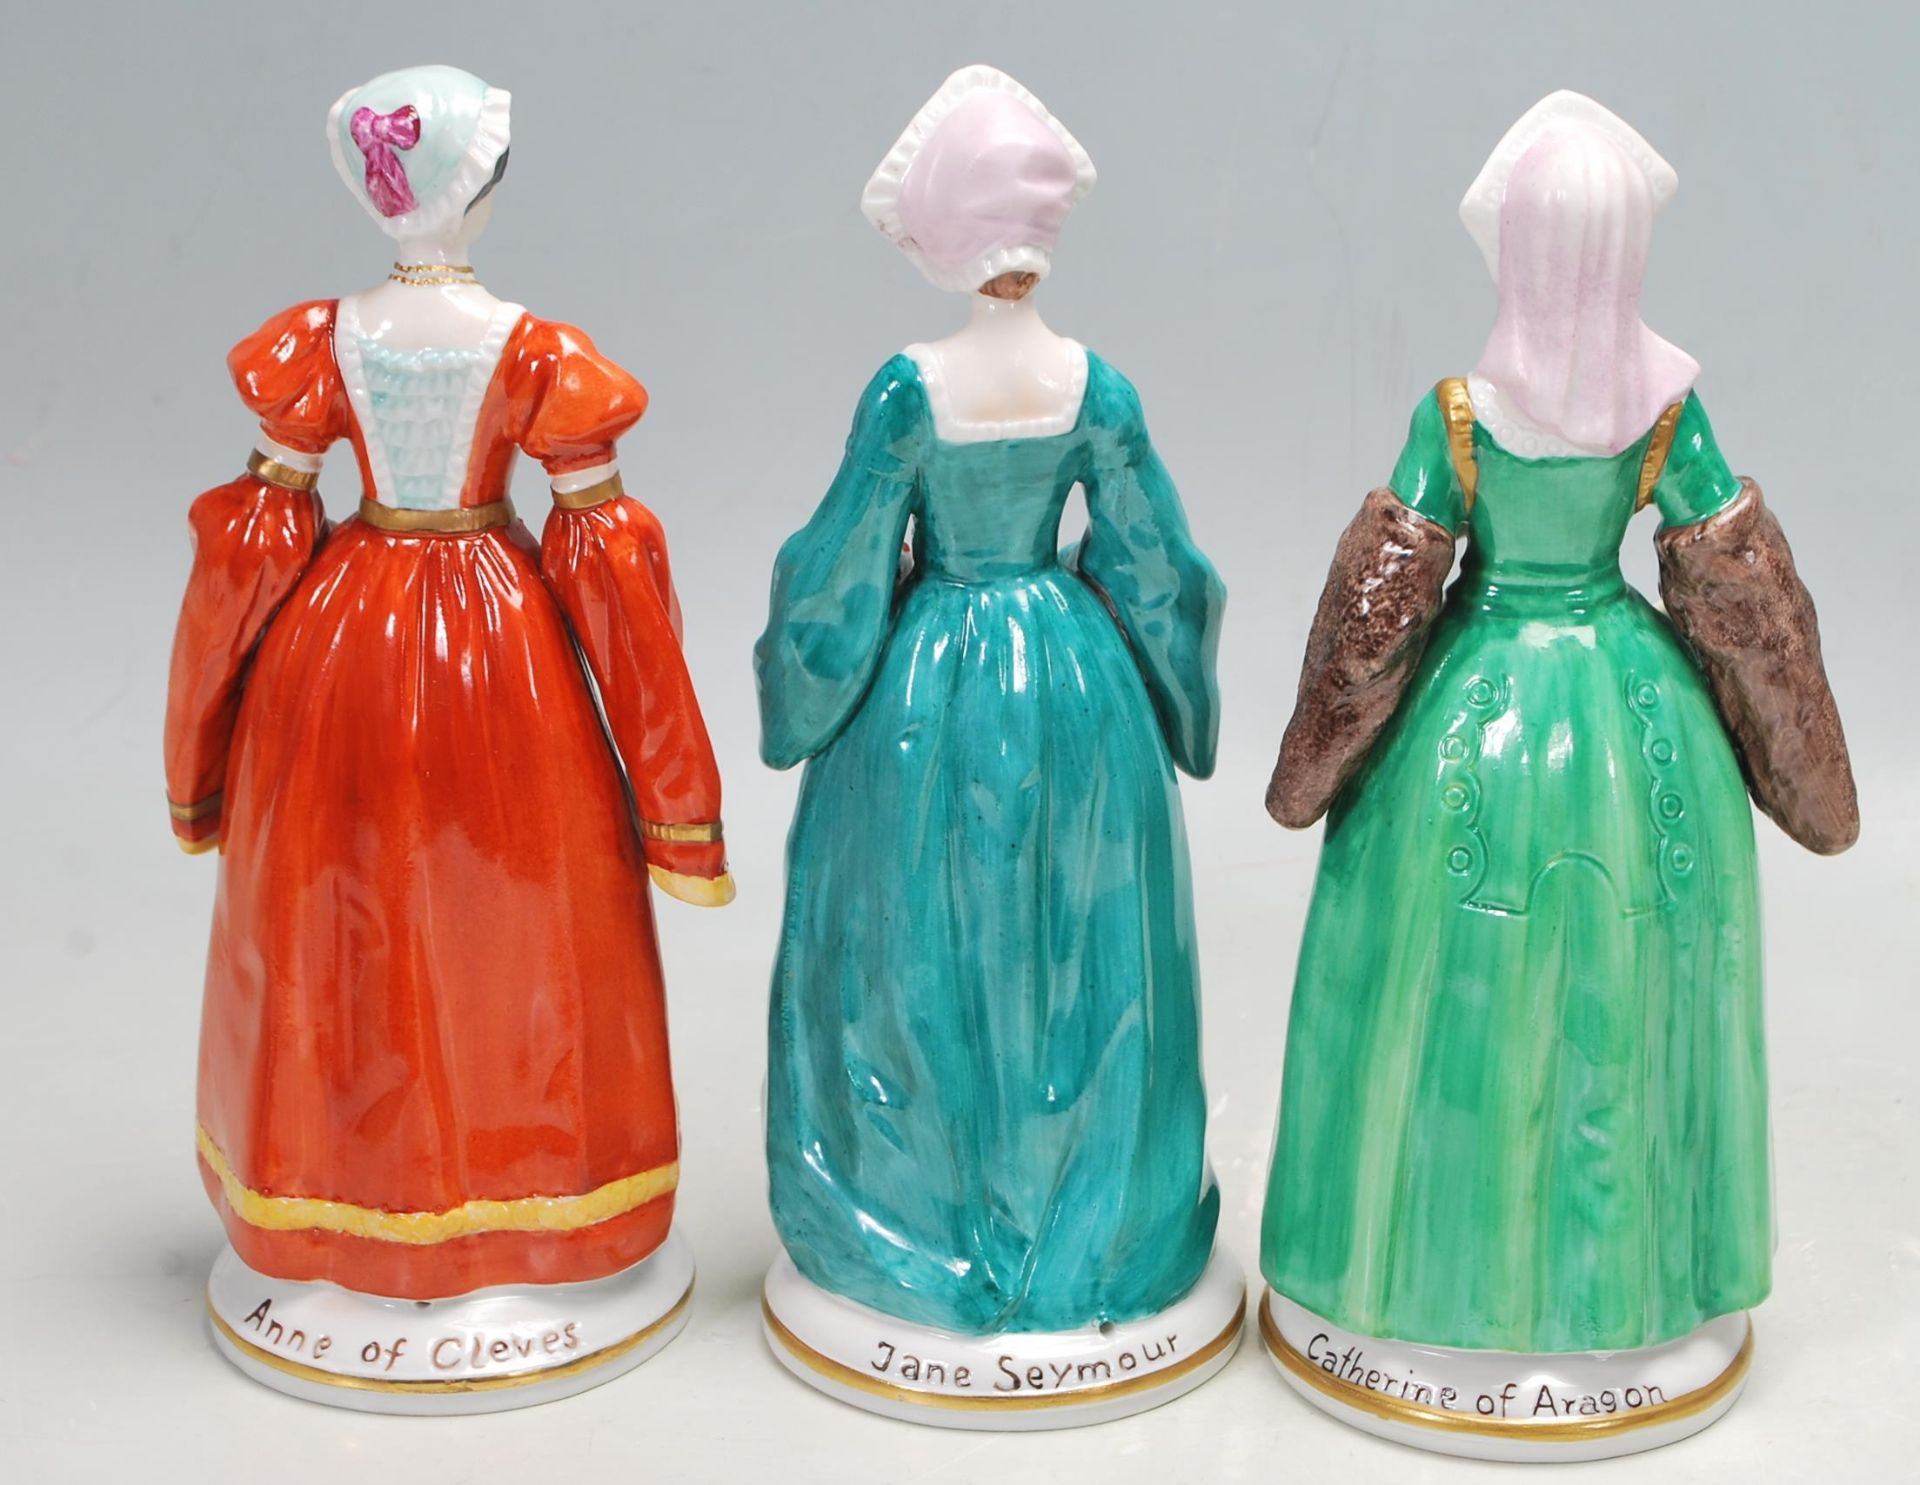 COLLECTION OF SEVEN SITZEDORF CERAMIC PORCELAIN FIGURINES OF HENRY VIII AND HIS SIX WIVES - Image 3 of 8